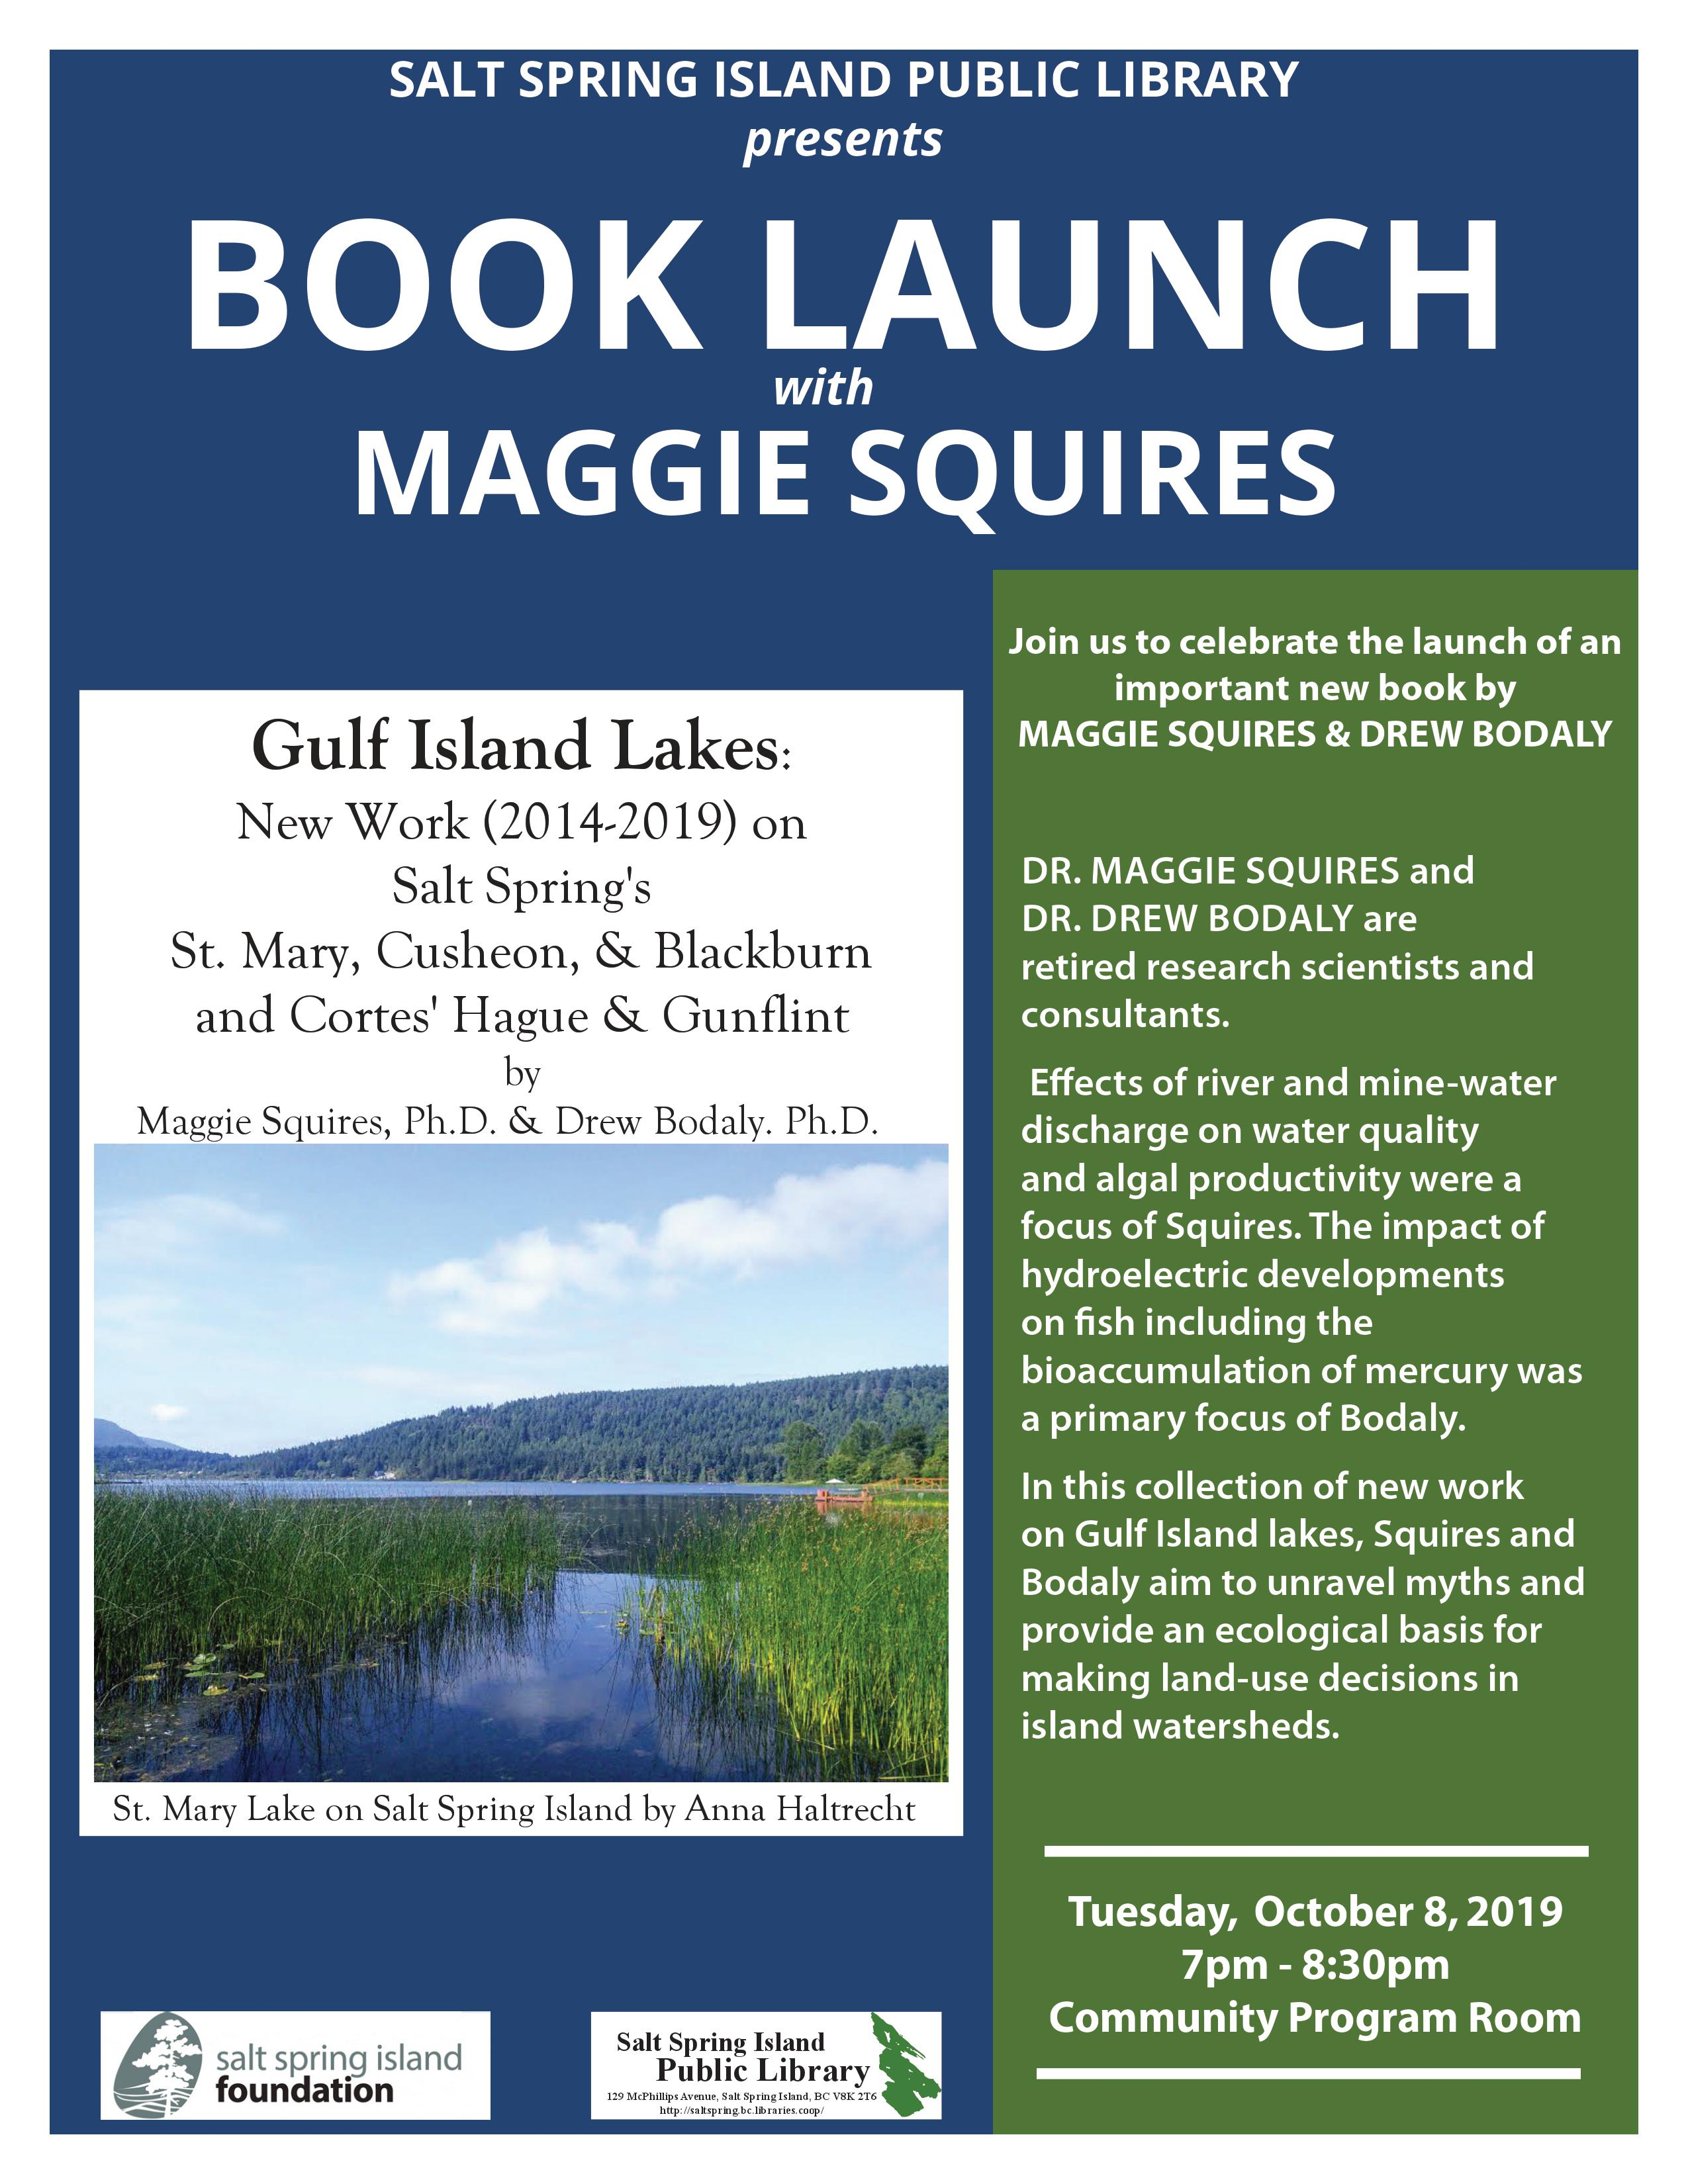 Maggie Squires and Drew Bodaly @ Community Program Room